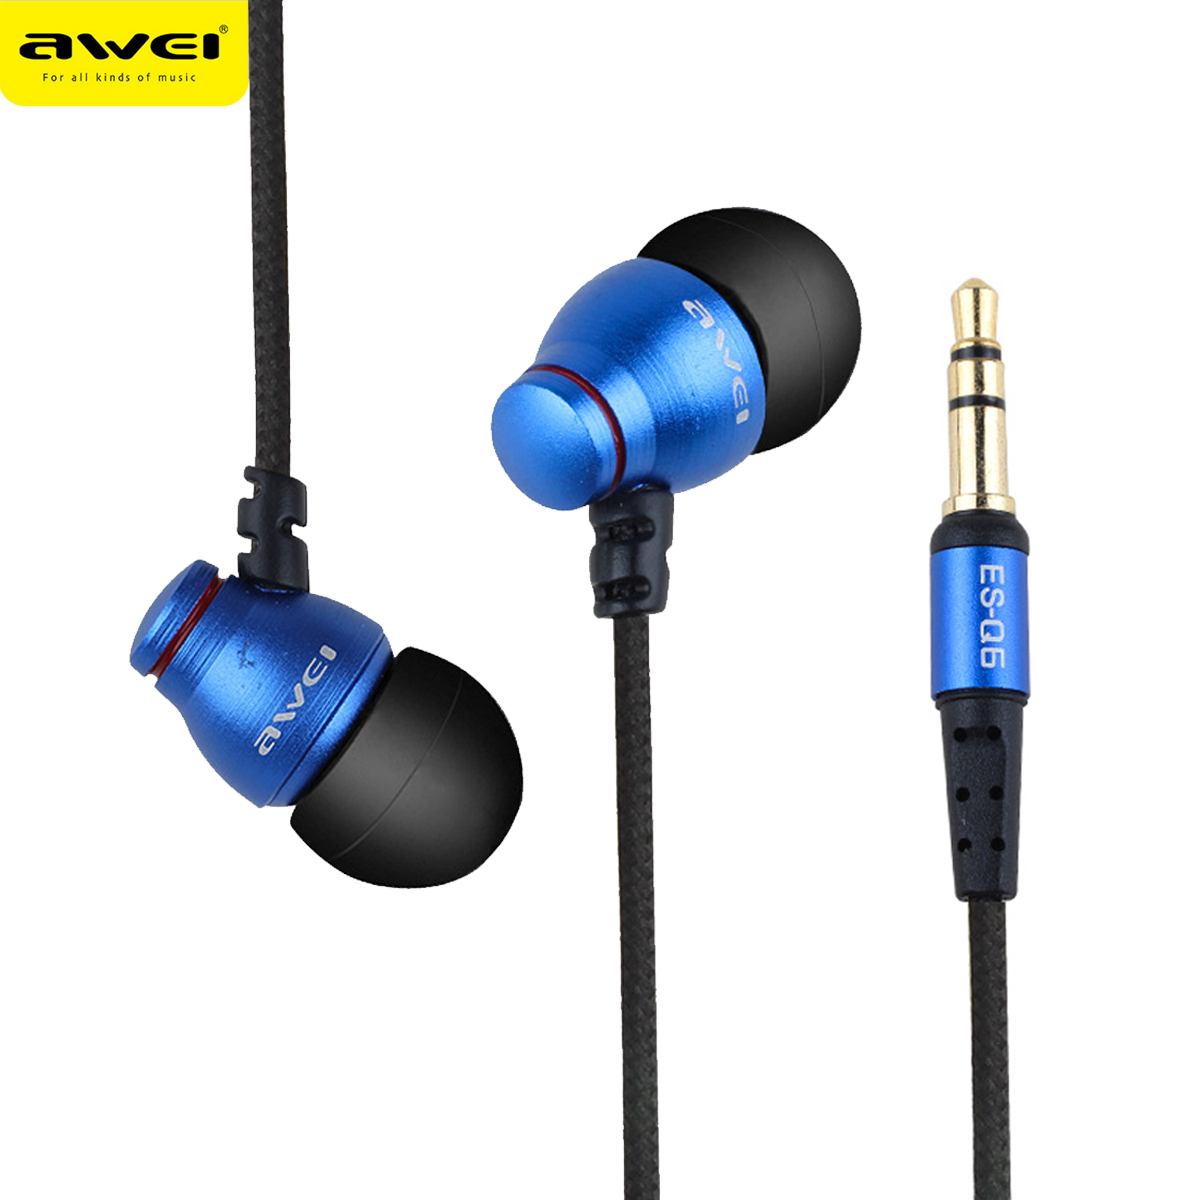 AWEI ES Q6 Wired Headphone For iPhone Samsung Huawei Stereo Earphone Super Bass Sound Headset For Phone MP3 MP4 Players awei es q5 red